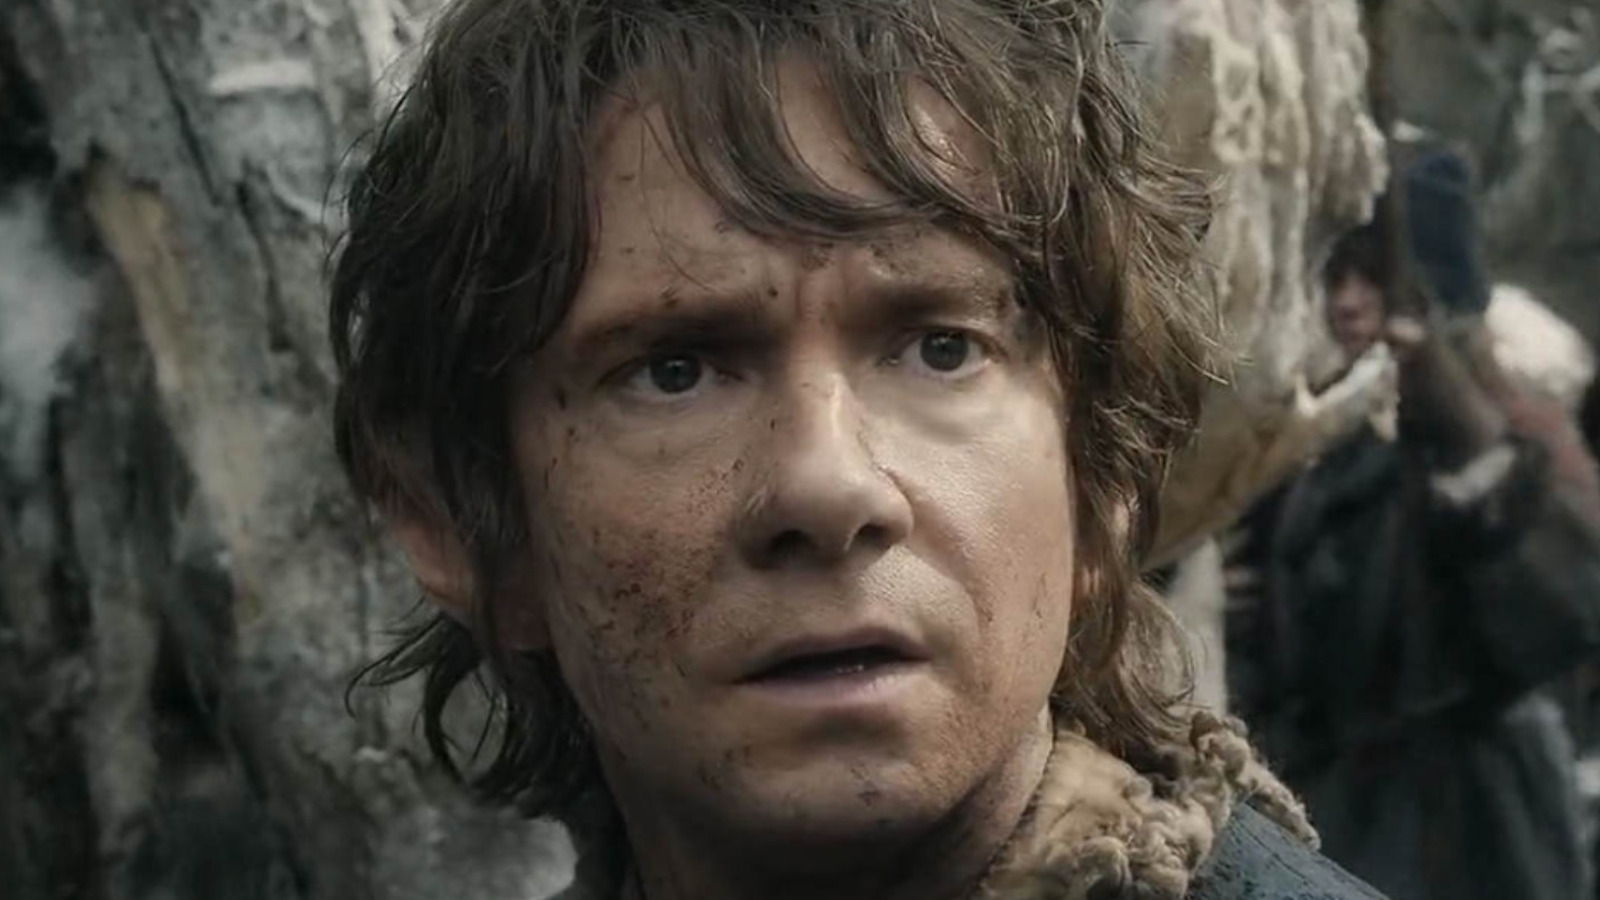 Will We See This Epic Pair Of Villains In Amazon's Middle-Earth Show? - Looper